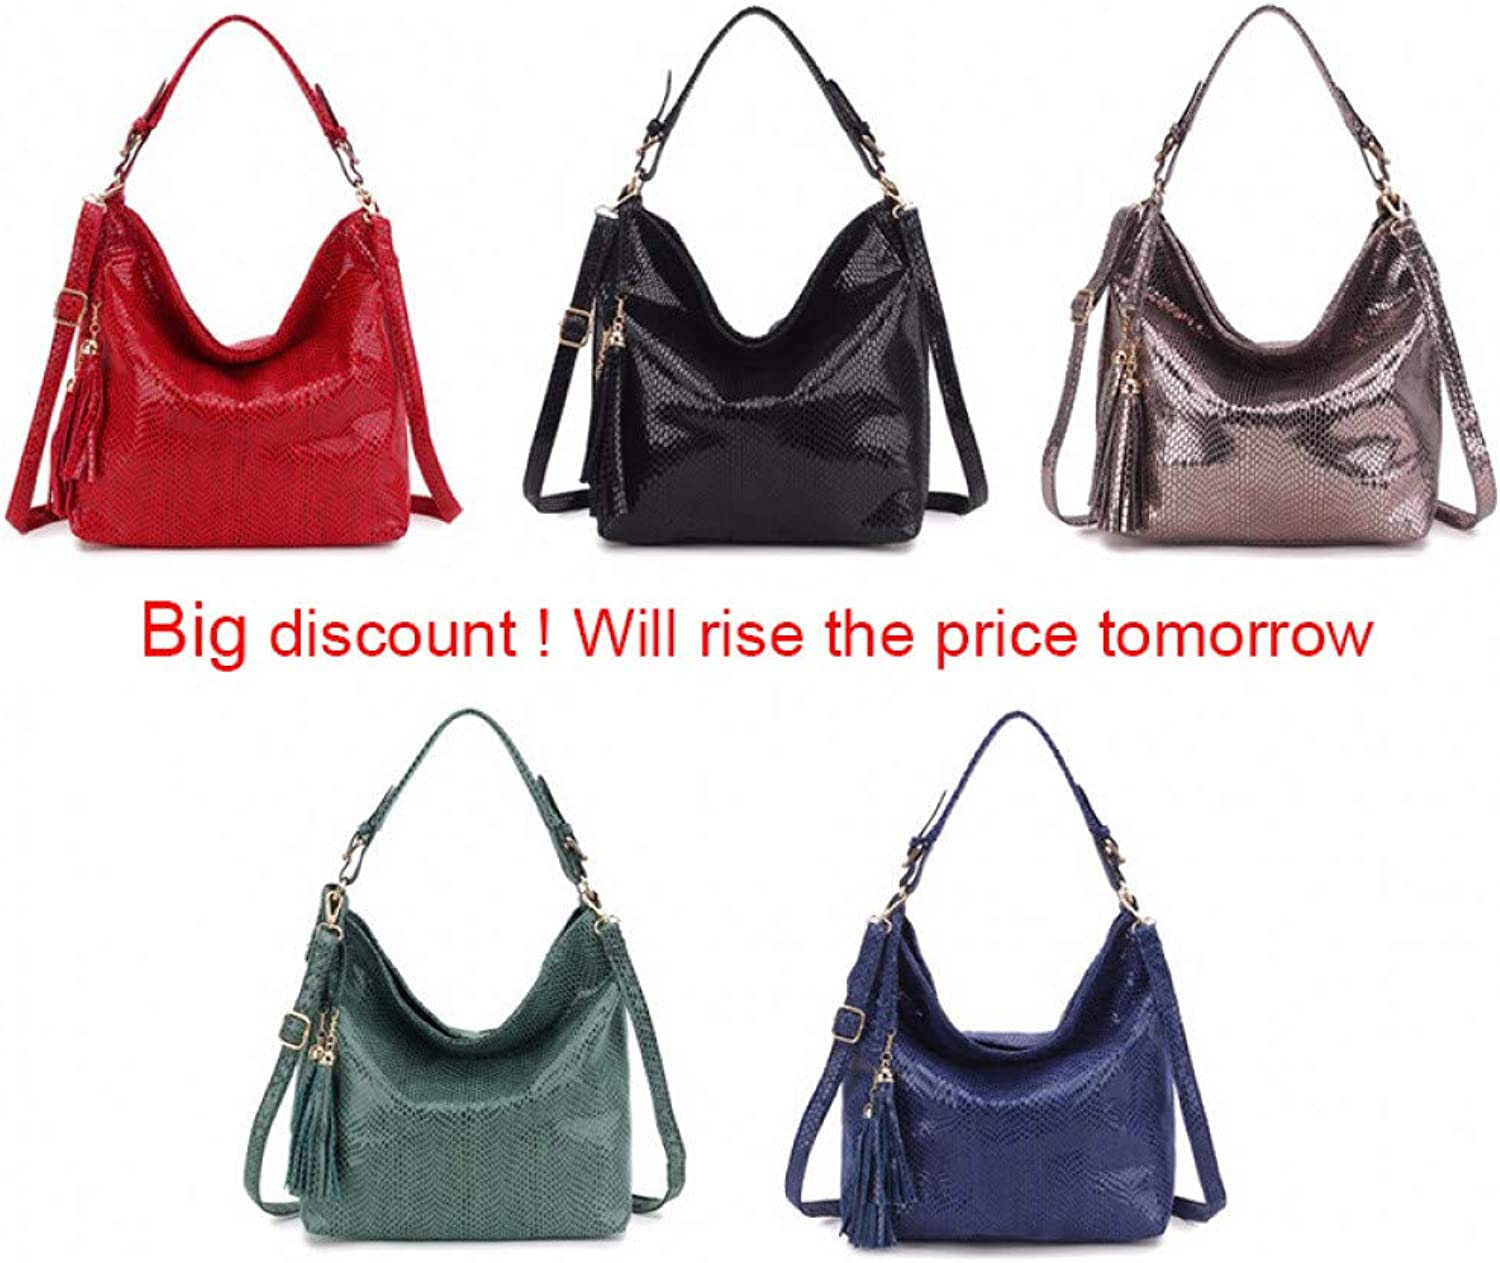 JQSM Fashion Women Leather Handbags Shoulder Bag Ladies -Handle Bags Female Purses and Handbags Black Sbody Bag for Women